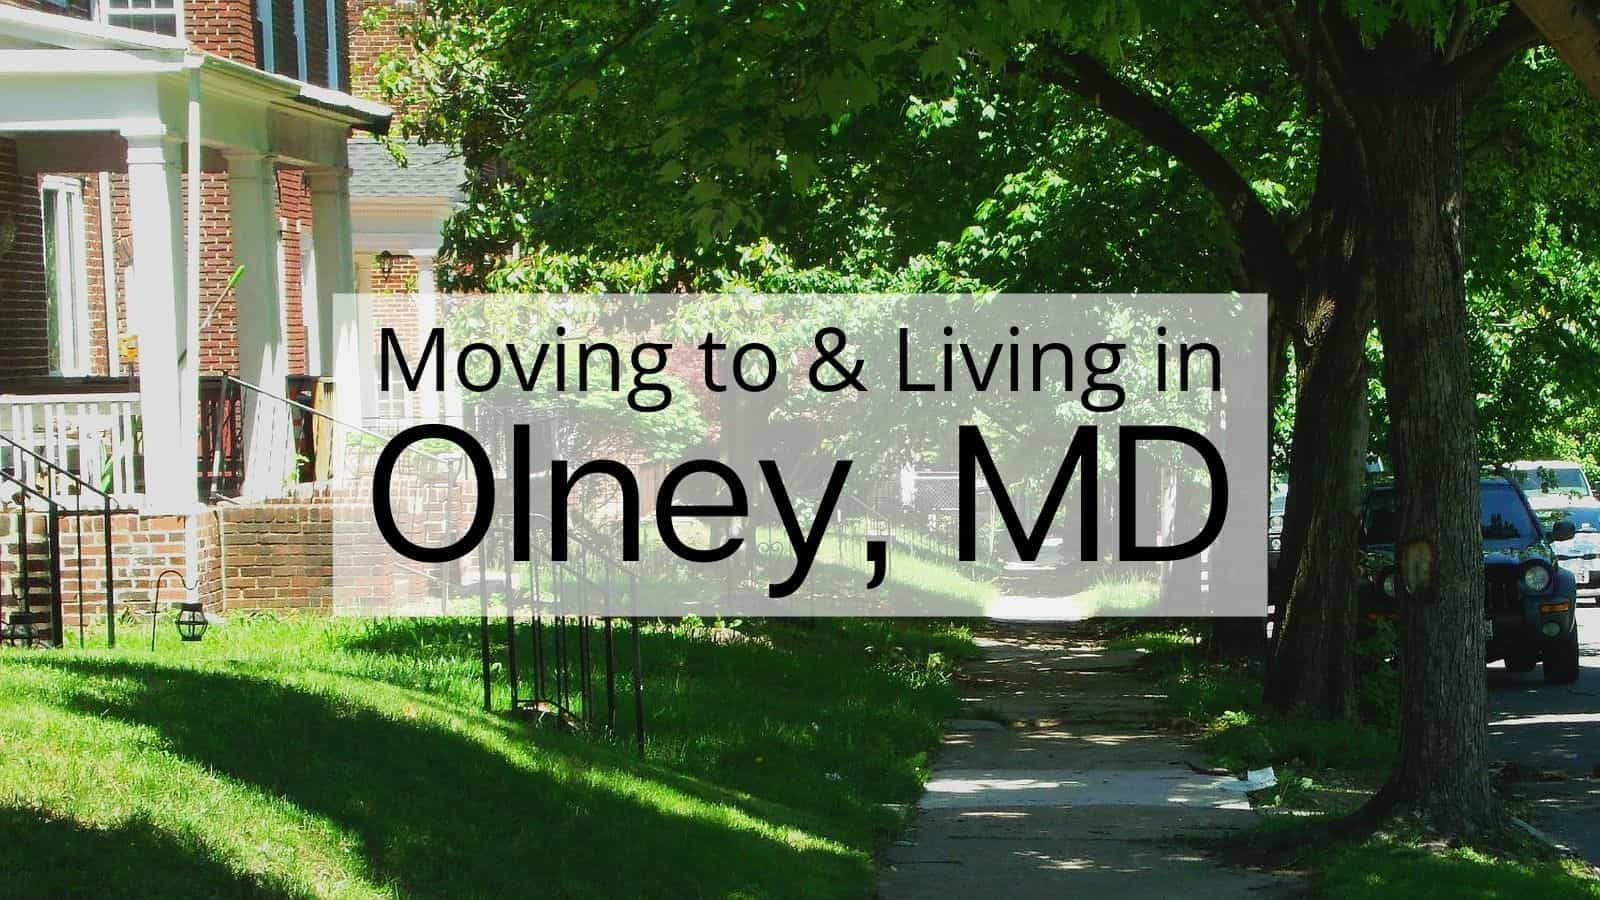 Moving to & Living in Olney, MD